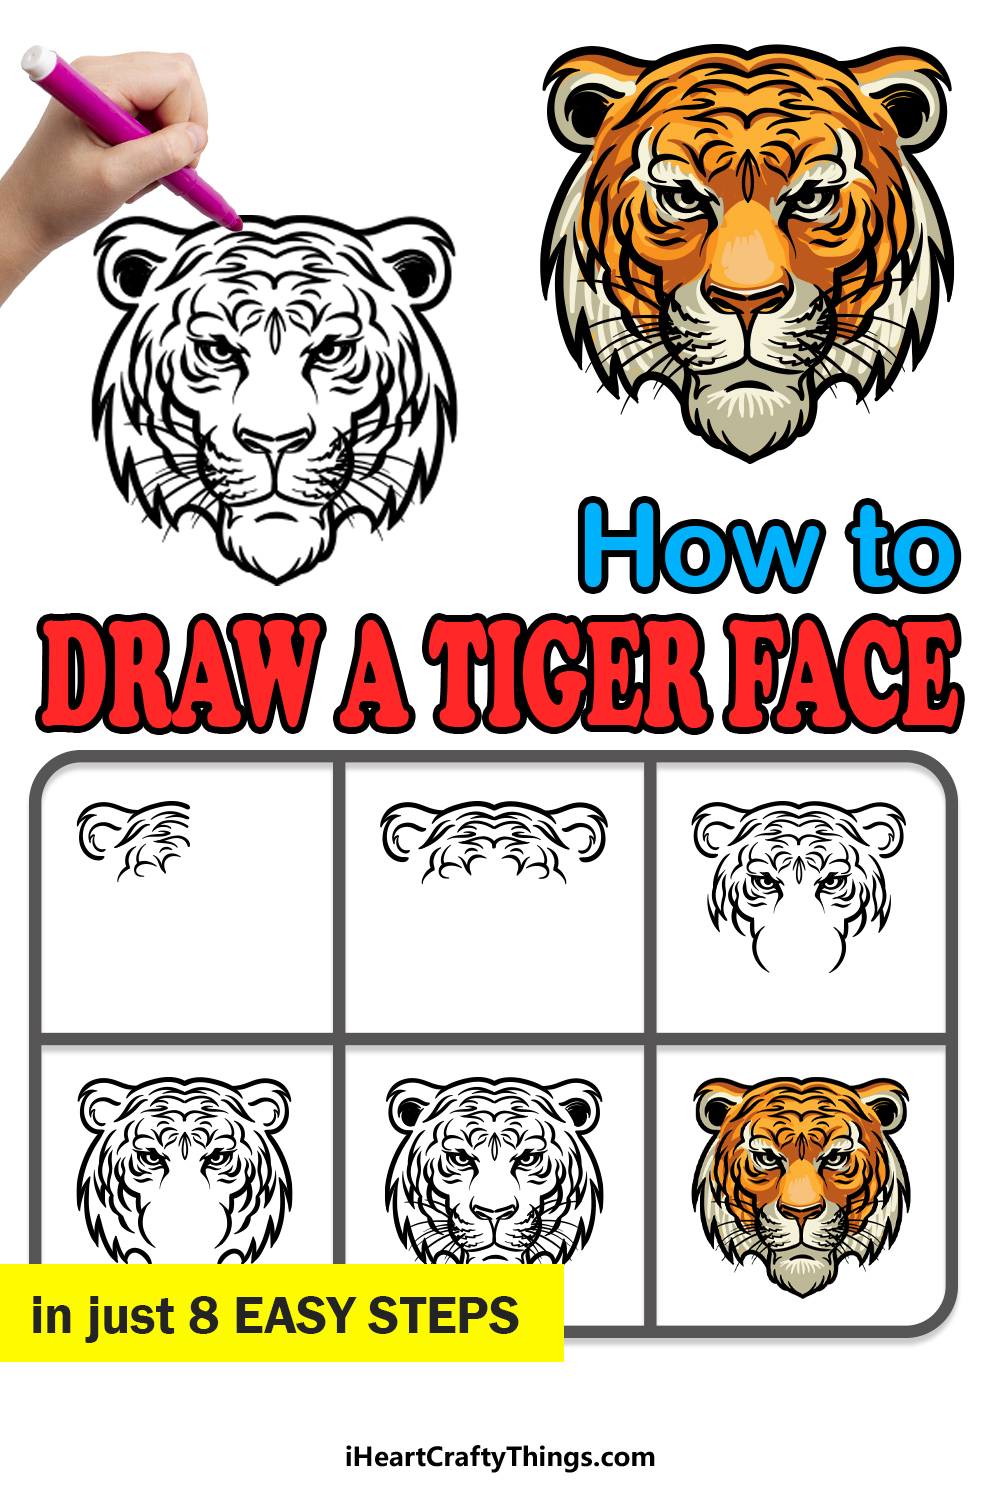 how to draw a tiger face in 8 easy steps